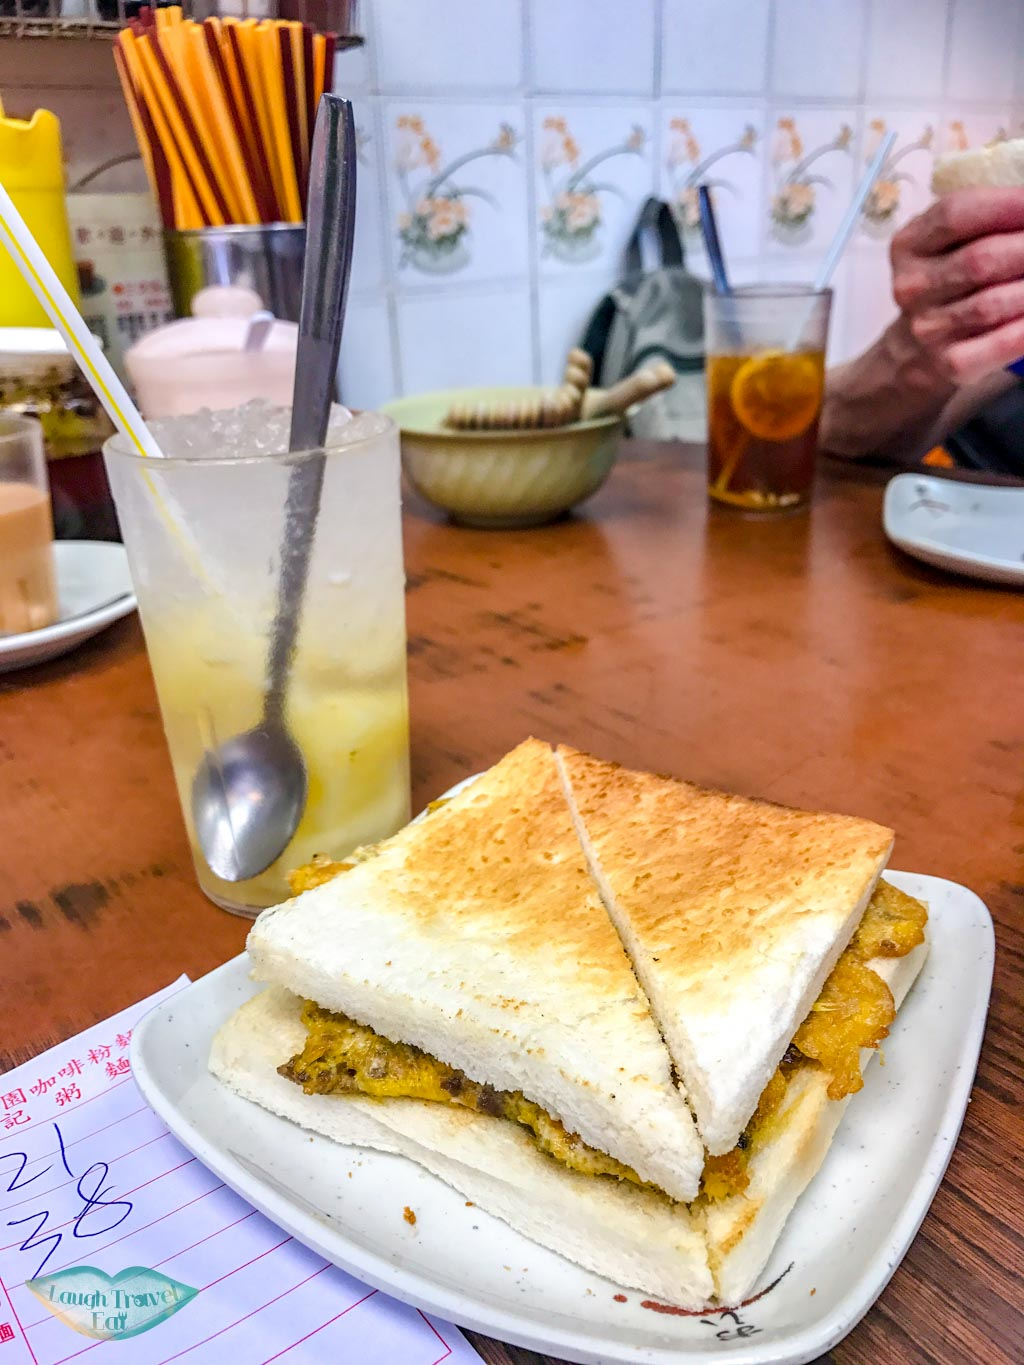 beef egg sandwich and pineapple ice Sun Heung Yuen sham shui po hong kong - laugh travel eat